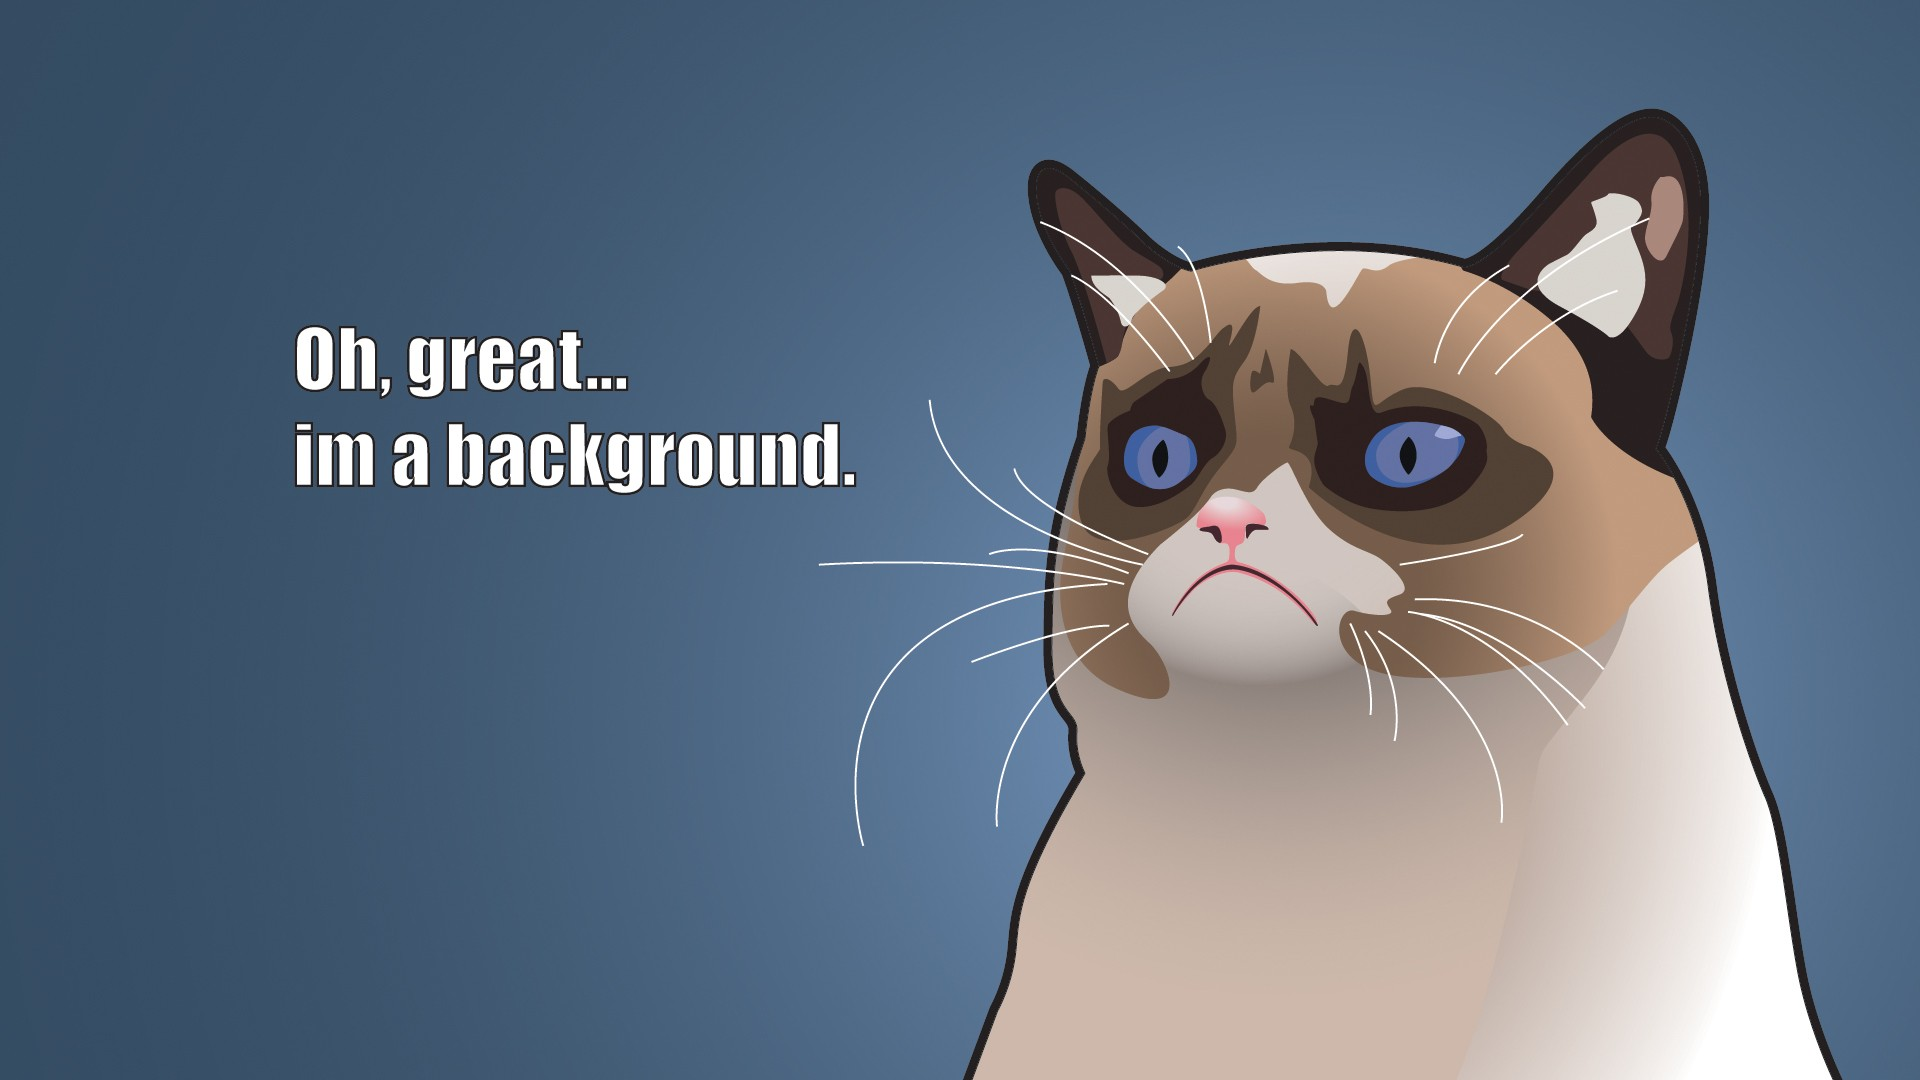 Grumpy Cat Meme Pictures humor funny cats r wallpaper background 1920x1080